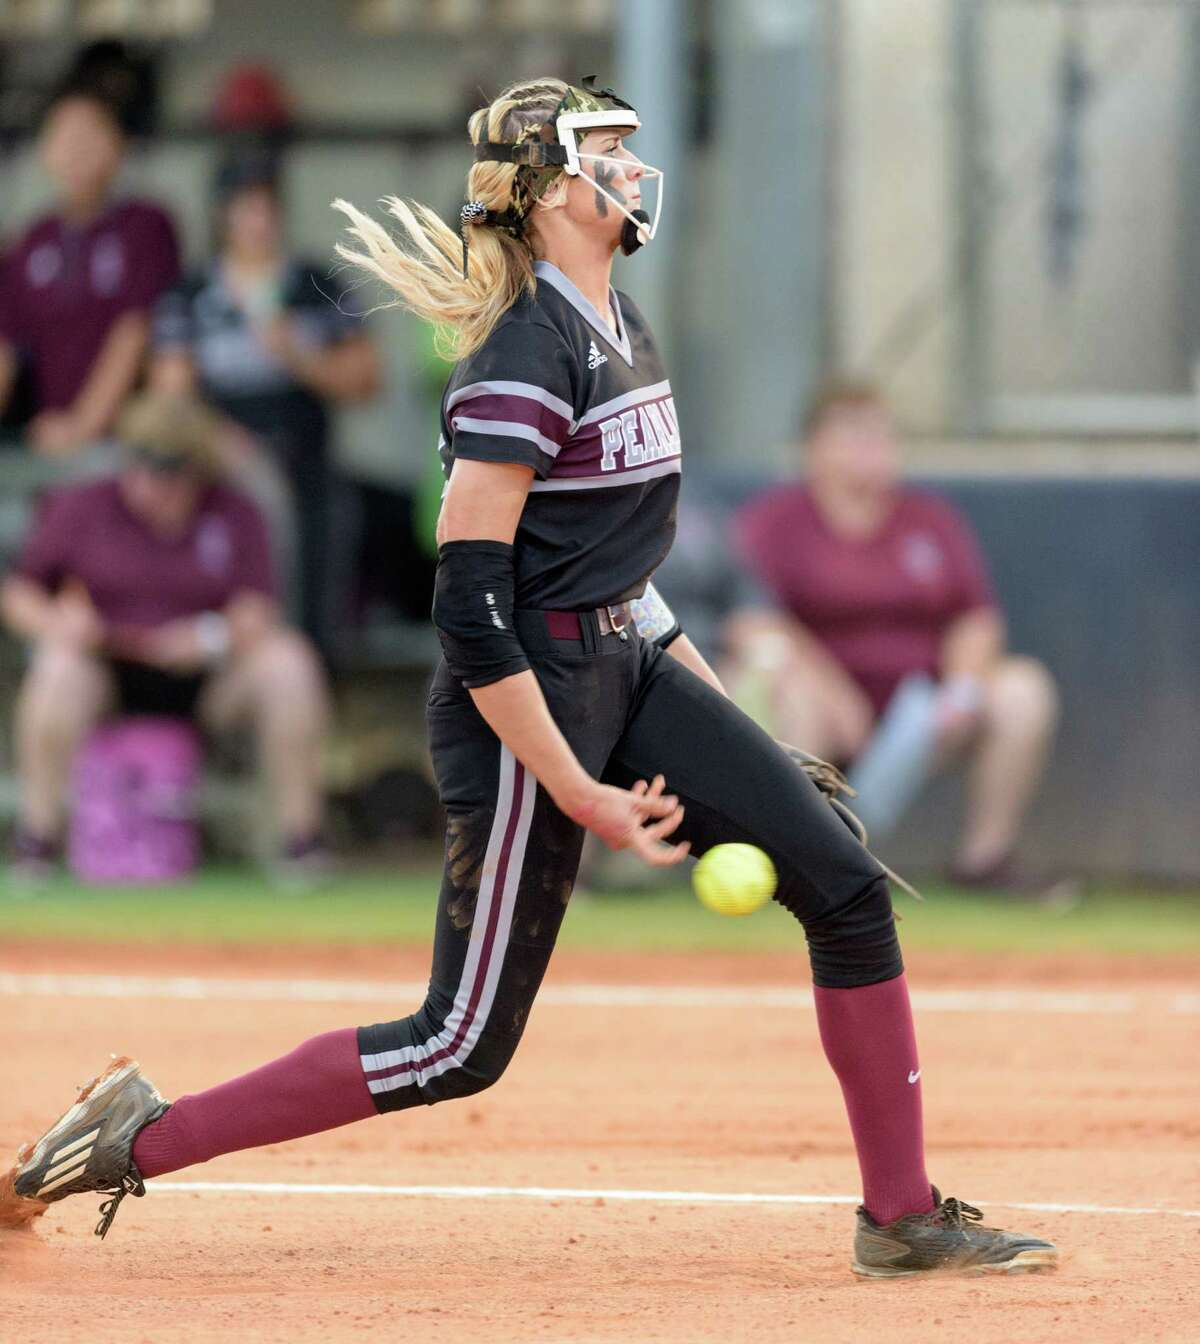 Alyssa Denham (18) of the Pearland Lady Oilers pitching against the Deer Park Lady Deer in the first inning in the Regional Quarterfinals on Friday, May 13, 2016 at the Dawson High School ballpark.